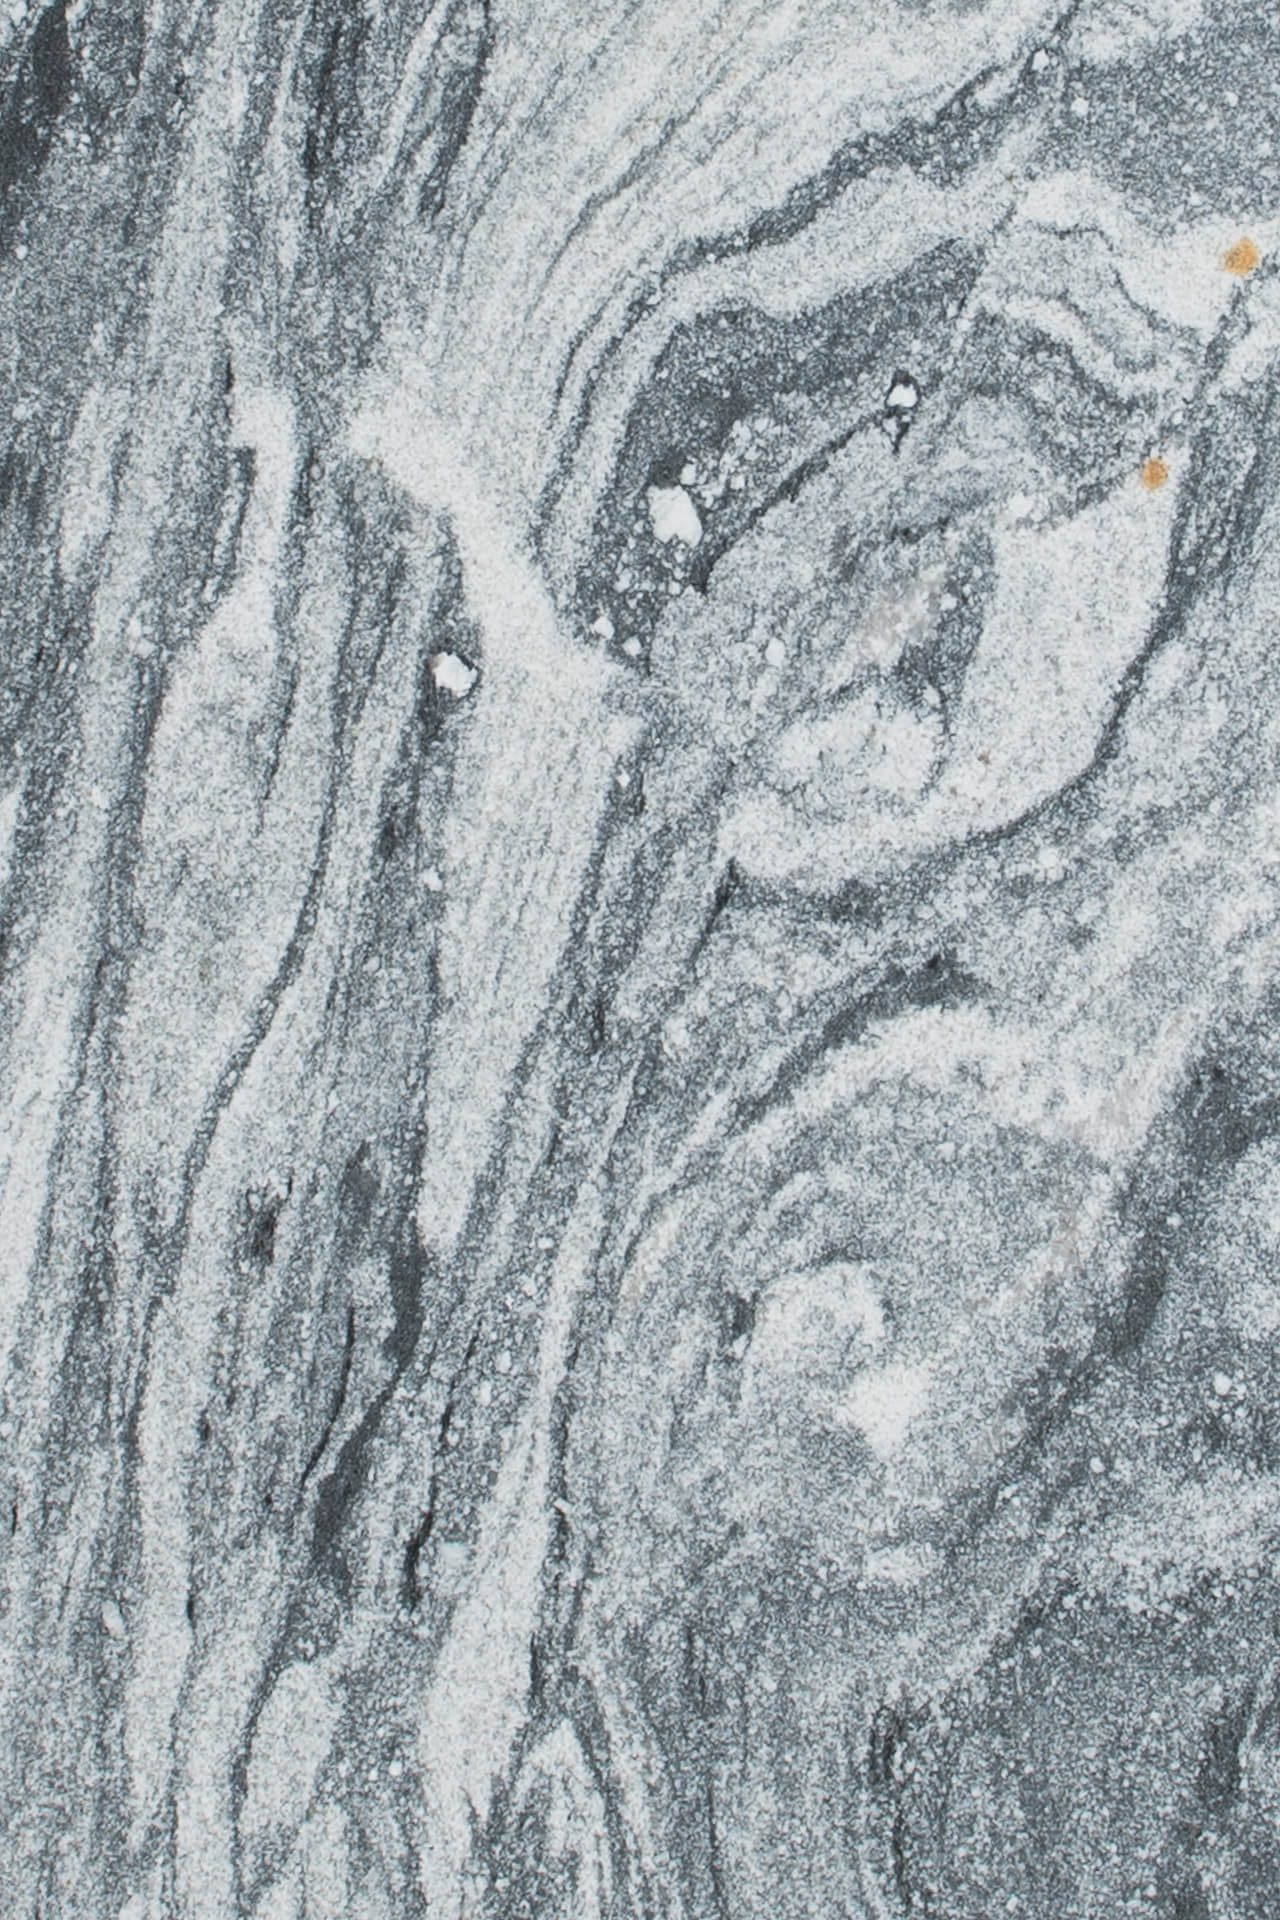 viscount white leathered cu countertop - by Magnolia Countertops. A Countertop fabricator of Granite Countertops, Marble Countertops, and Quartz Countertops in Cookeville and Crossville TN.